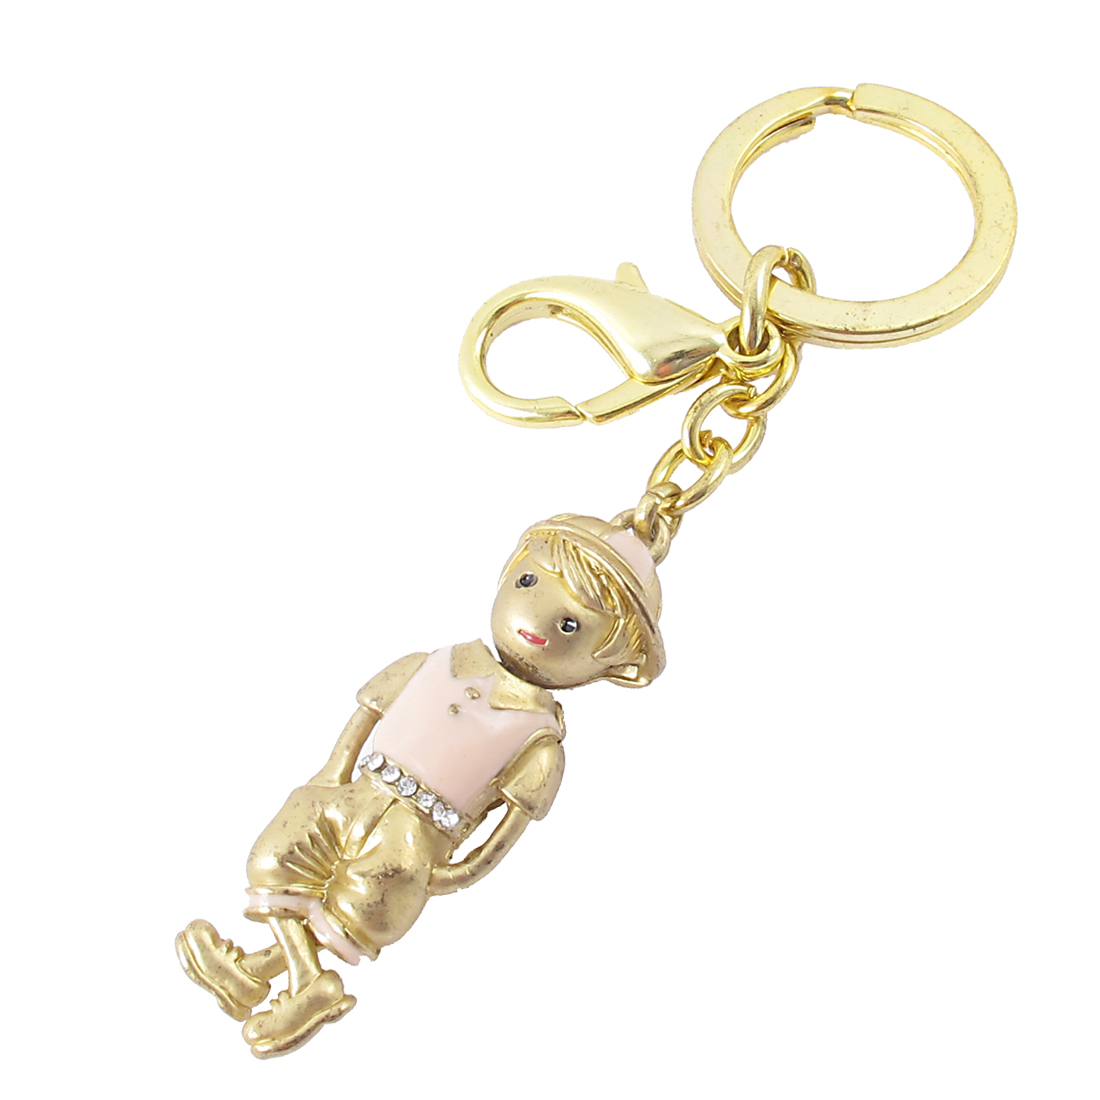 Pink Gold Tone Metal Figure Keychain Boy Pendant Keyring for Gift